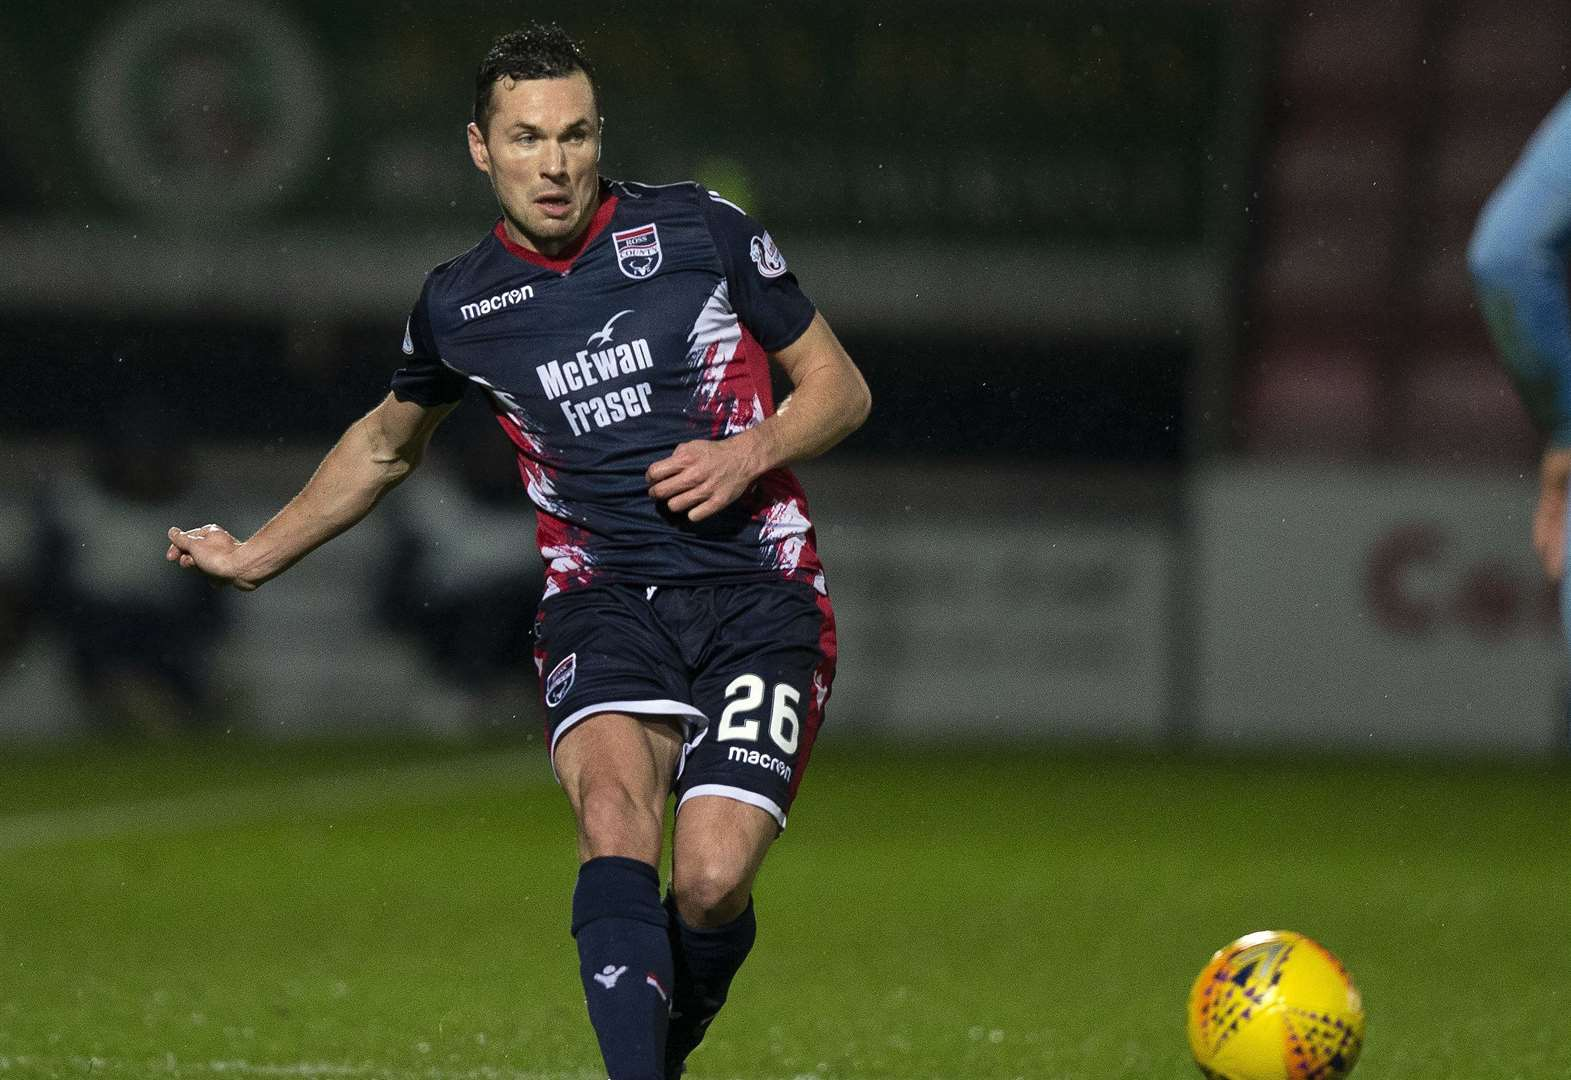 Points over performances for Ross County's Cowie